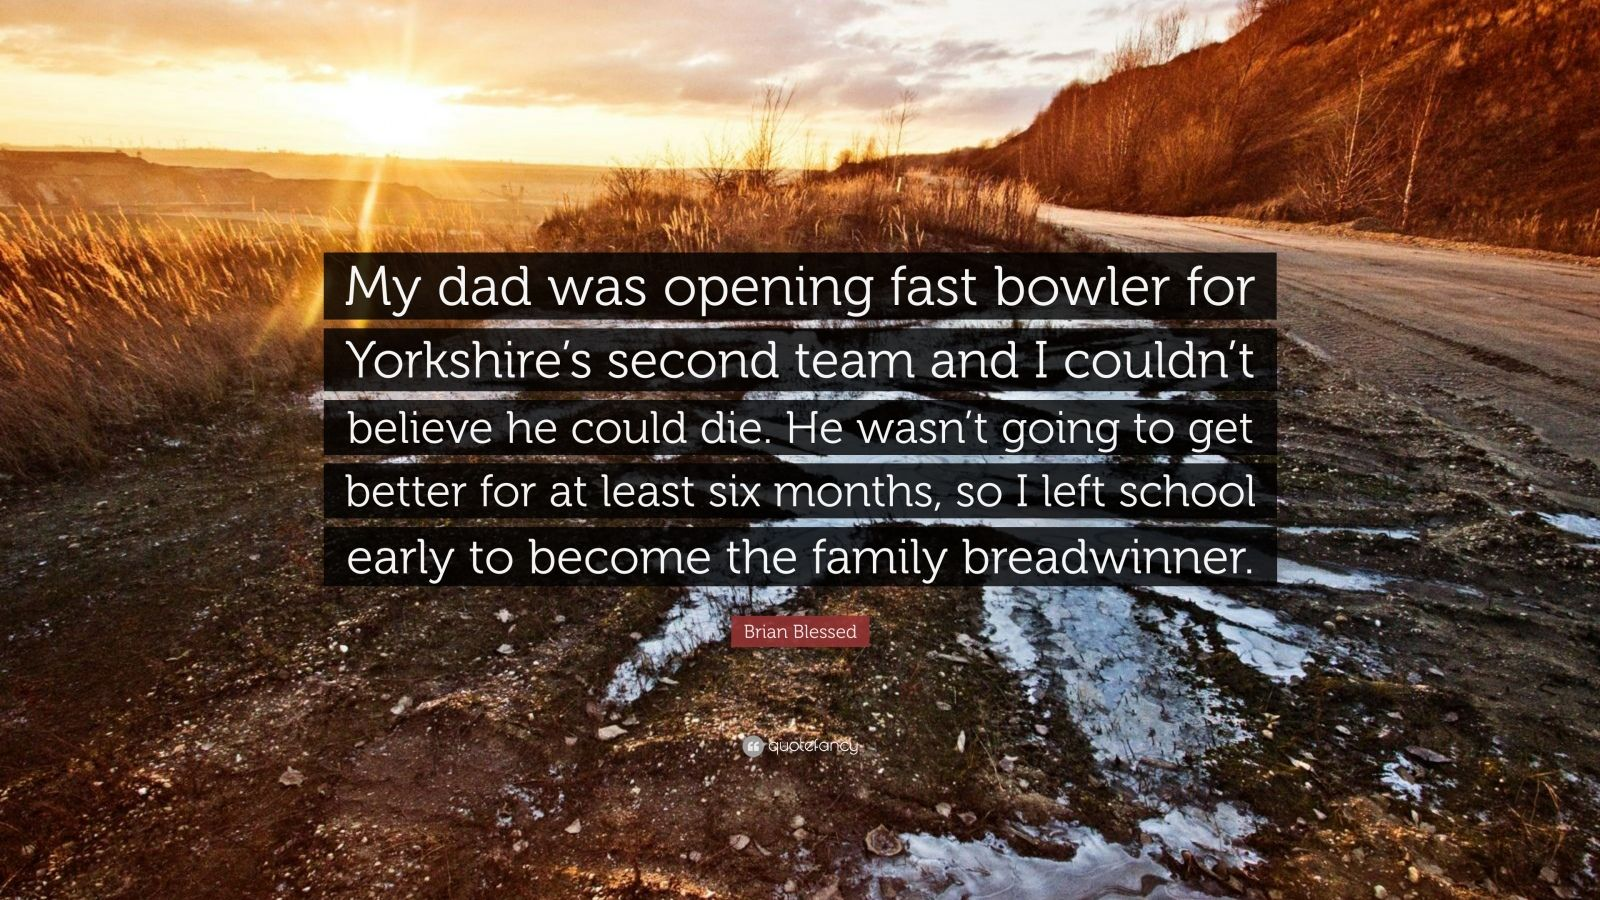 """Brian Blessed Quote: """"My dad was opening fast bowler for Yorkshire's second team and I couldn't believe he could die. He wasn't going to get better for at least six months, so I left school early to become the family breadwinner."""""""